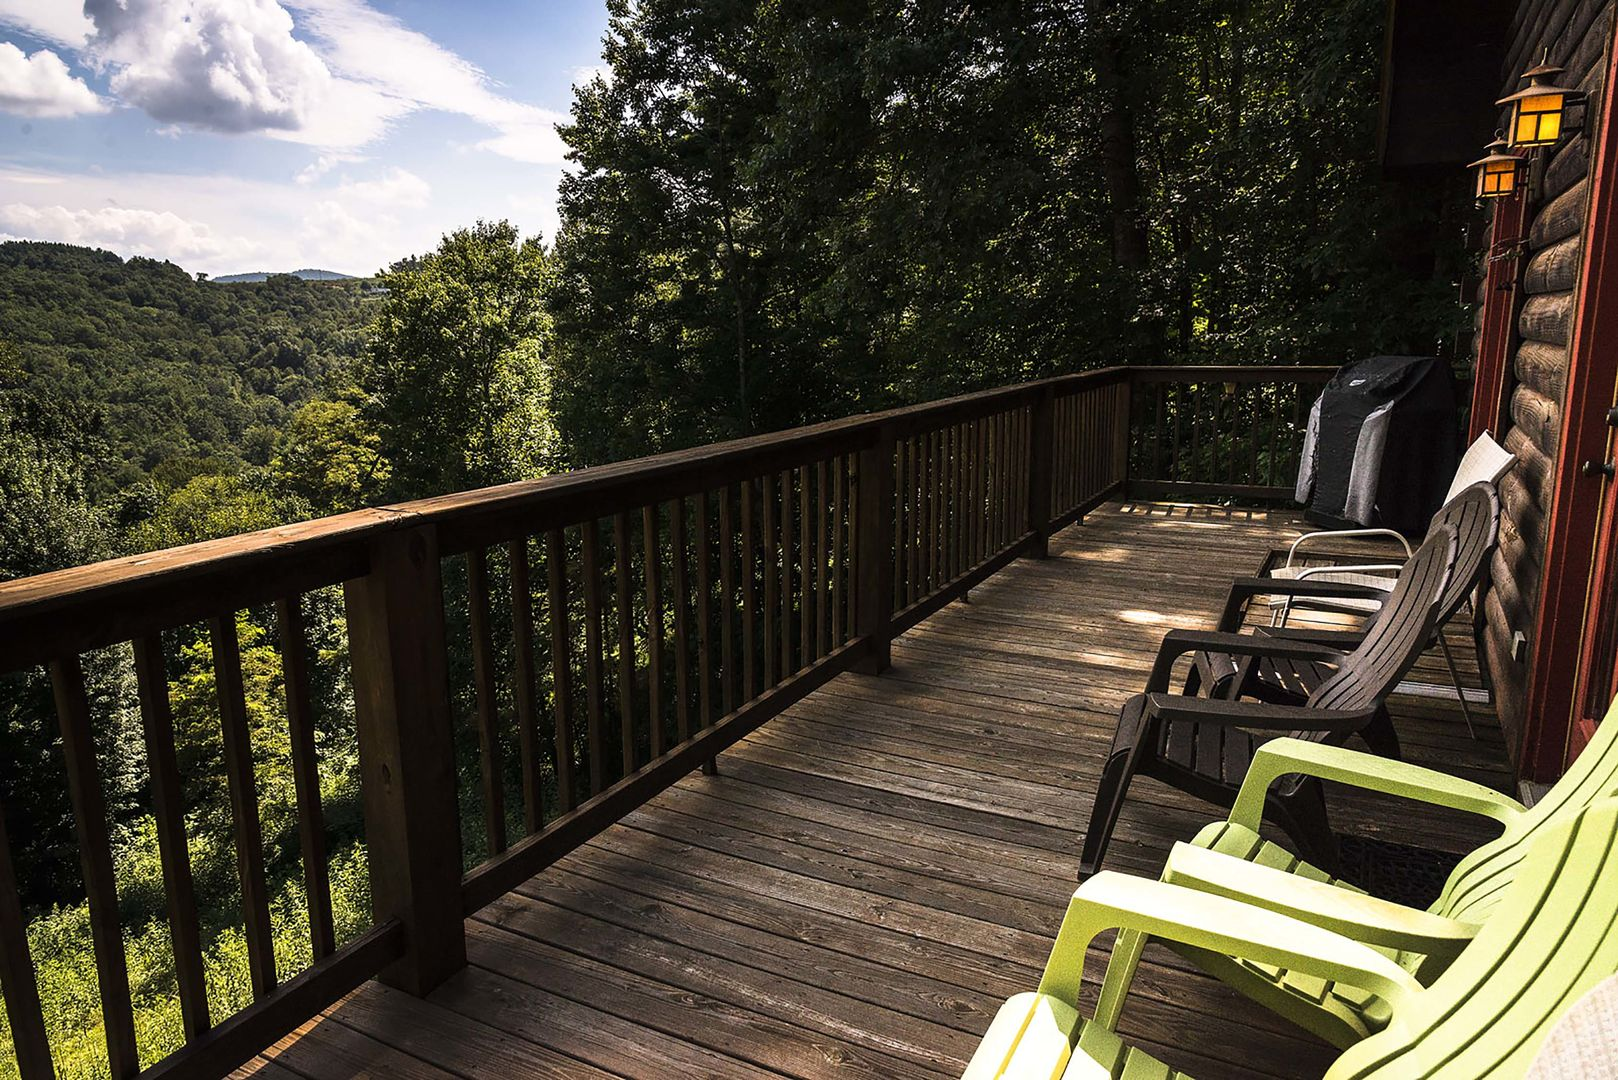 Deck with chairs facing the mountains